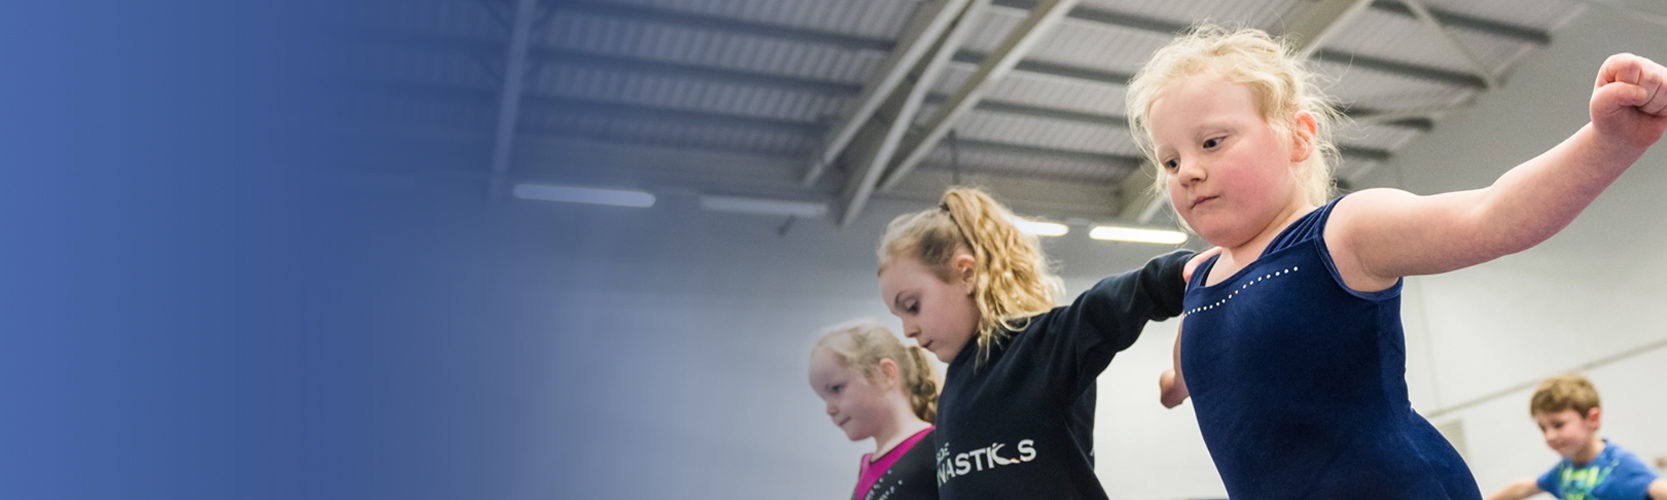 Gymnastics Summer Activities Kids Active Tameside